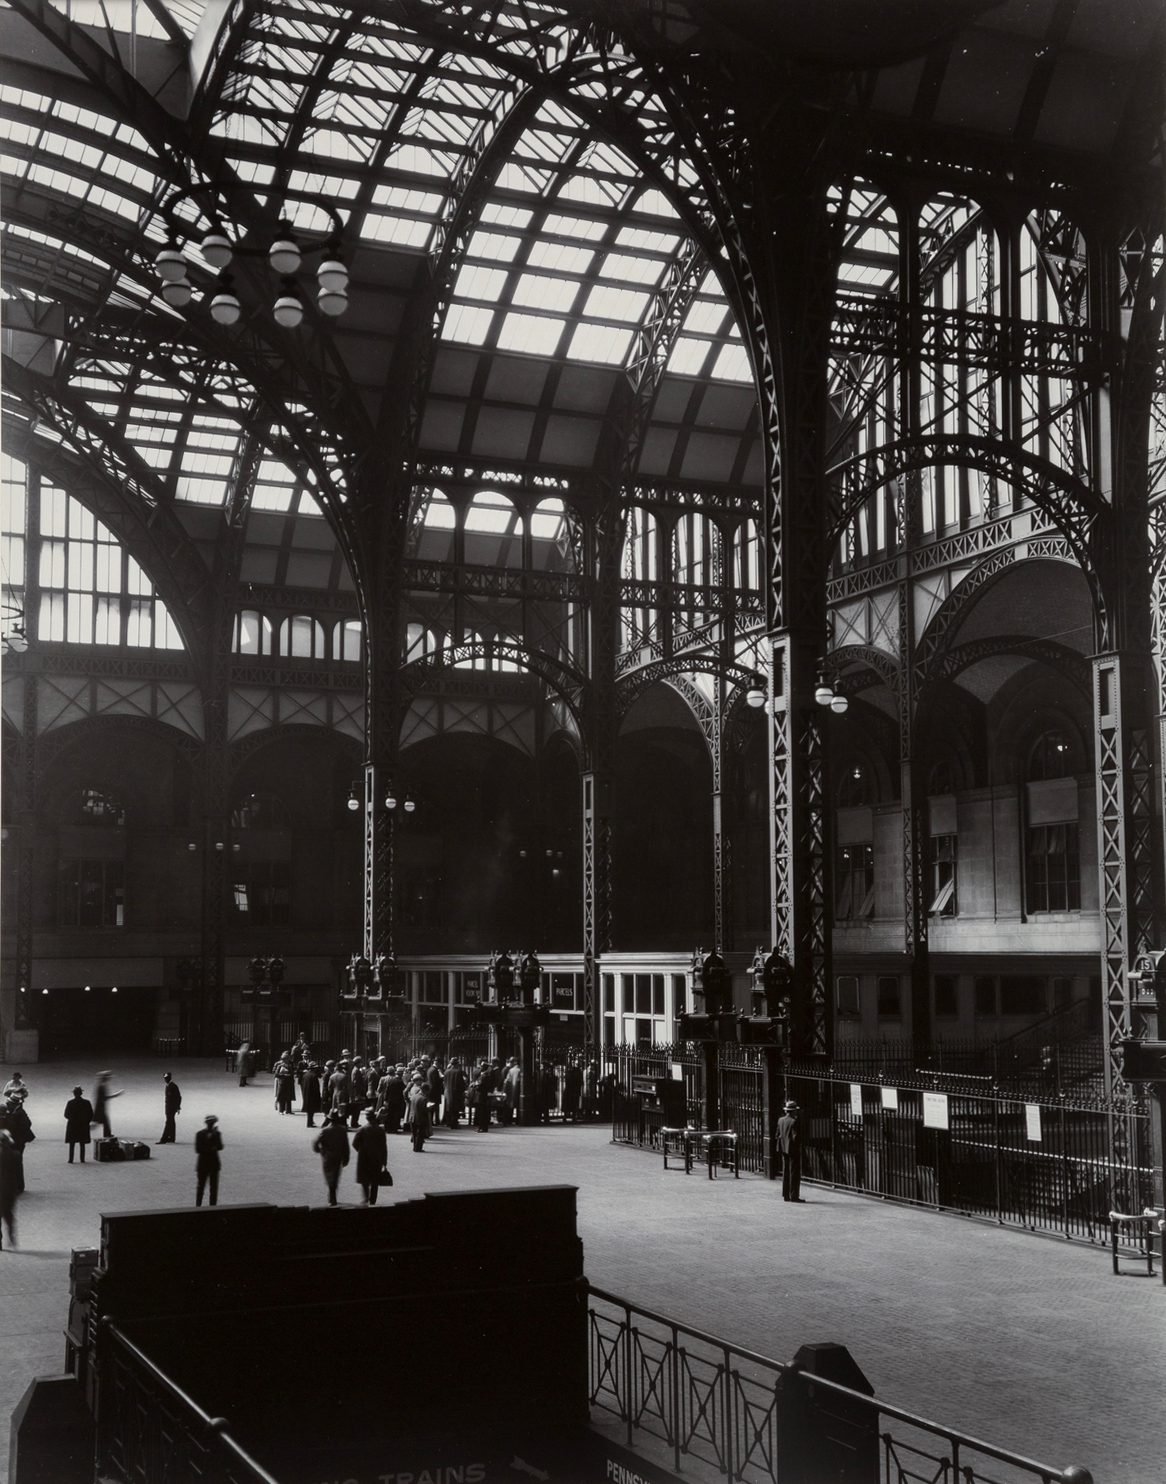 Pennsylvania Station Interior